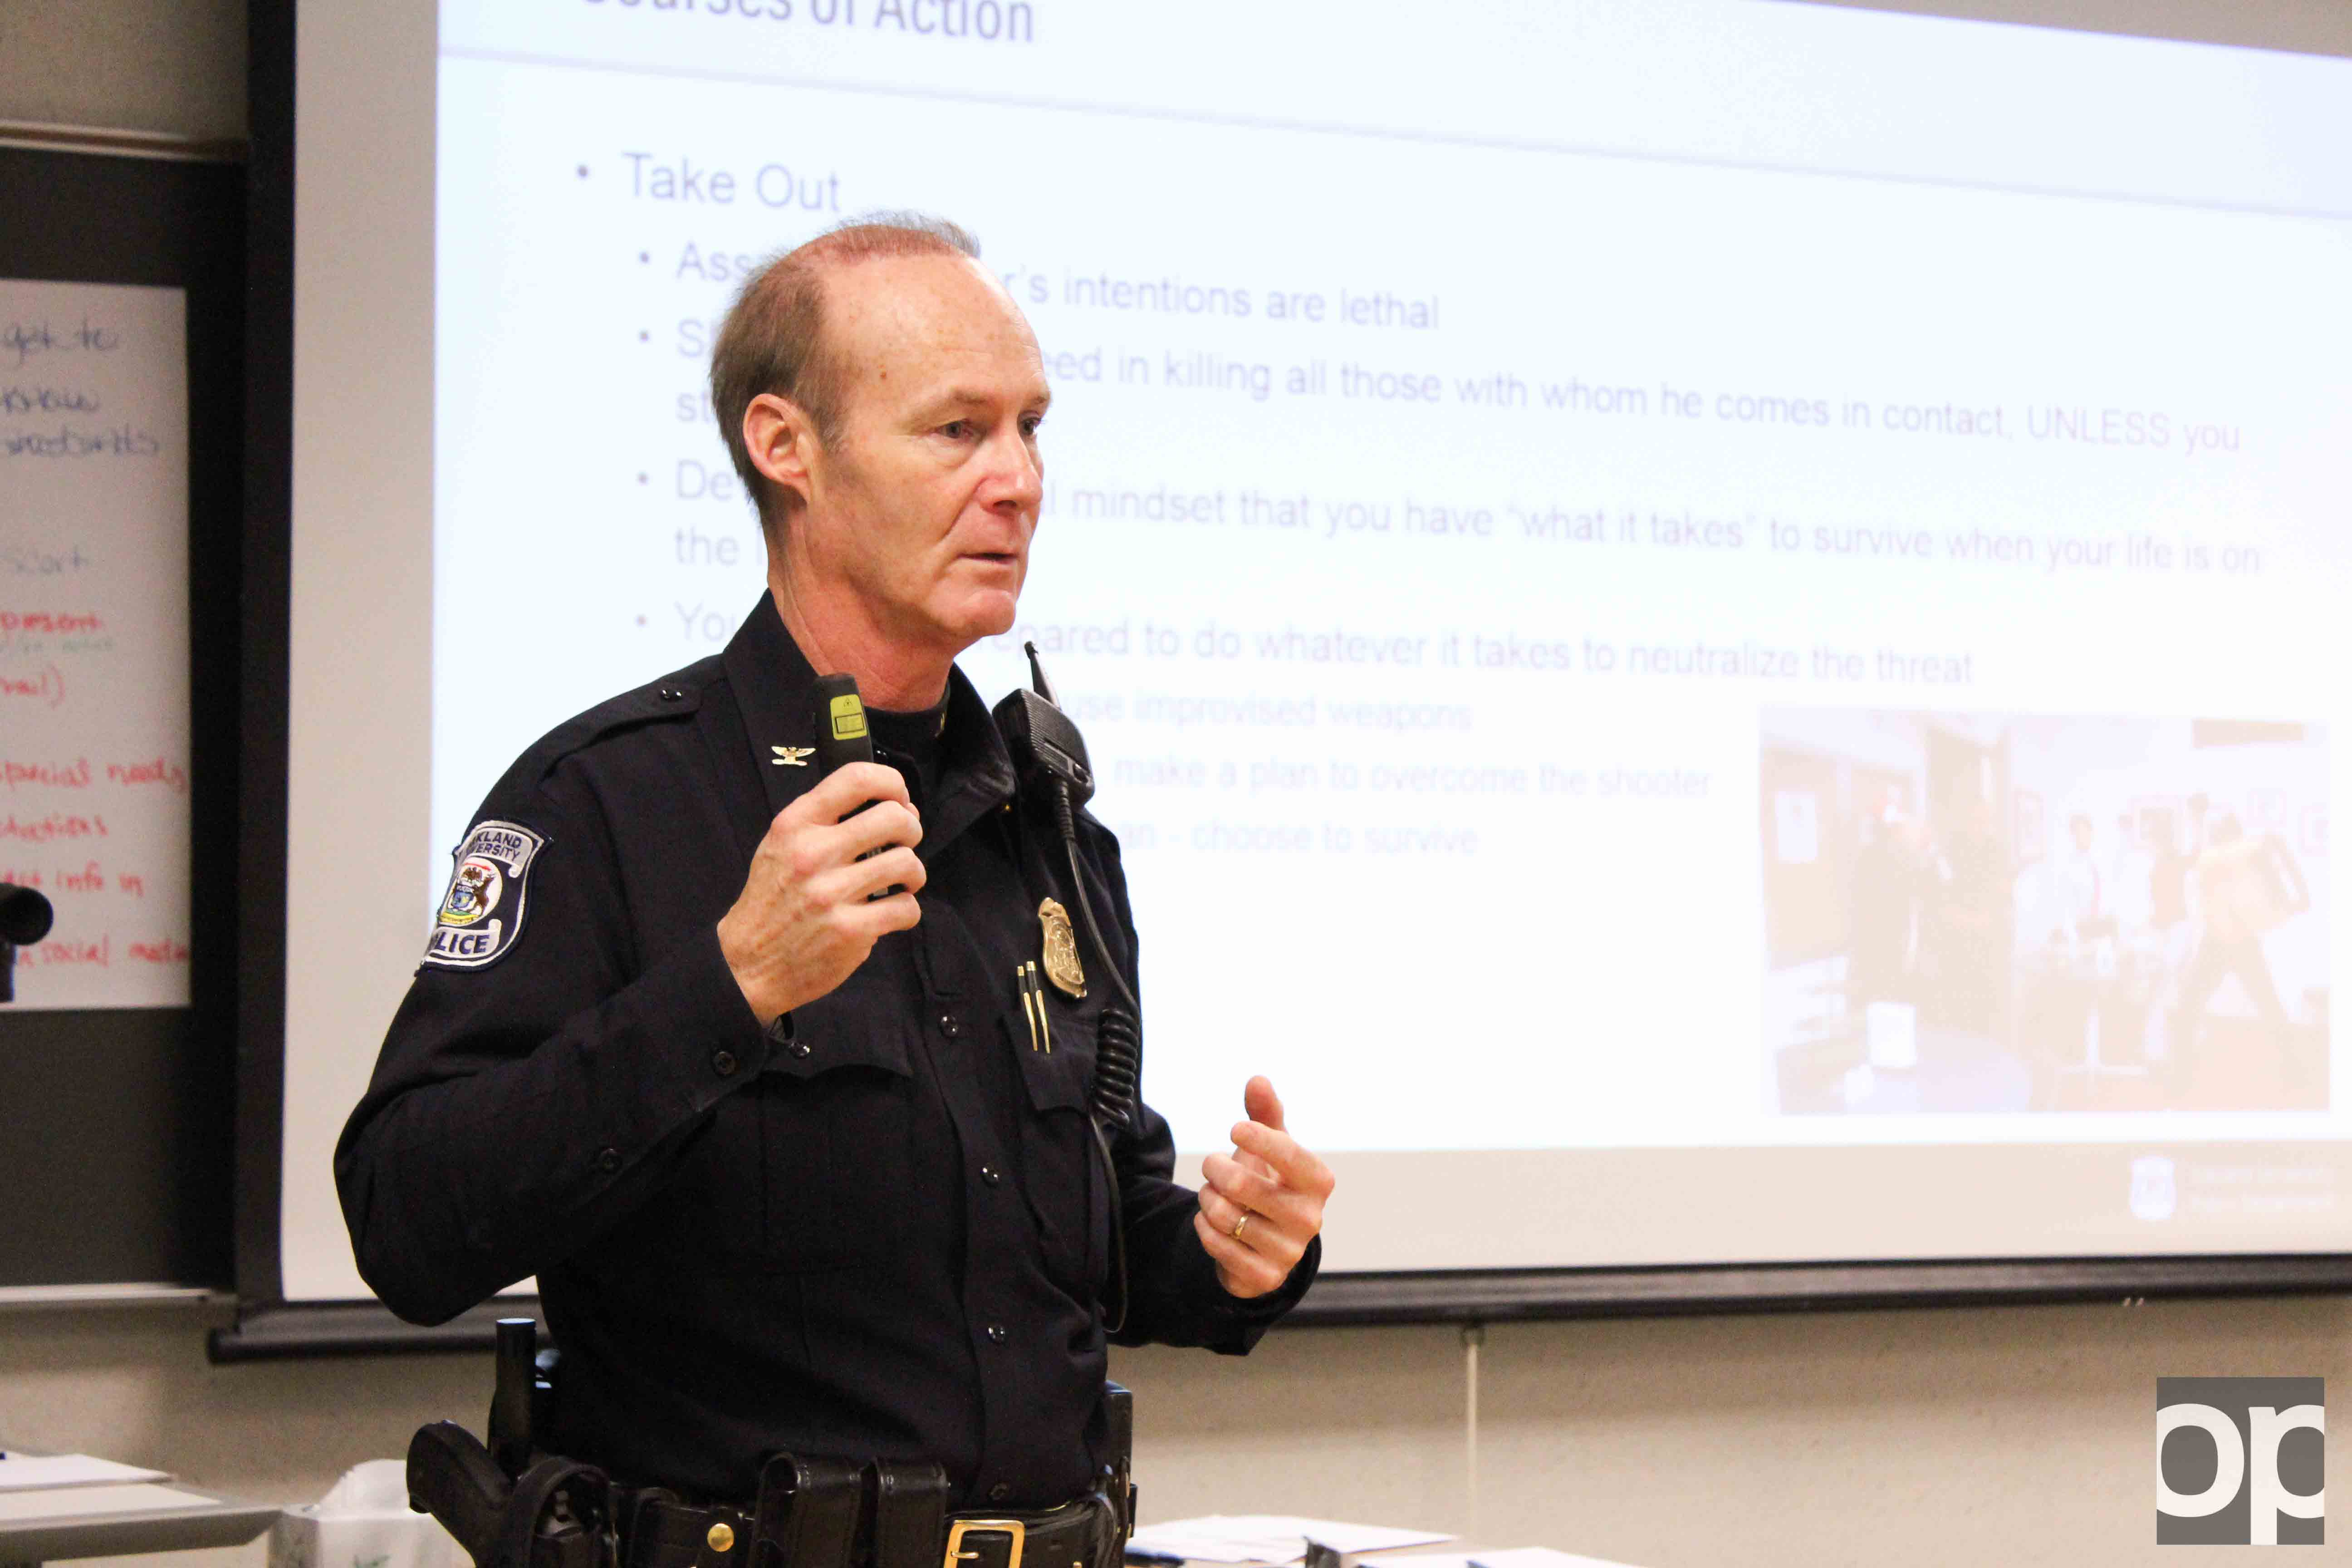 Oakland University Police Department Chief of Police Mark Gordon spoke to professors about safety procedures during an active shooter situation.